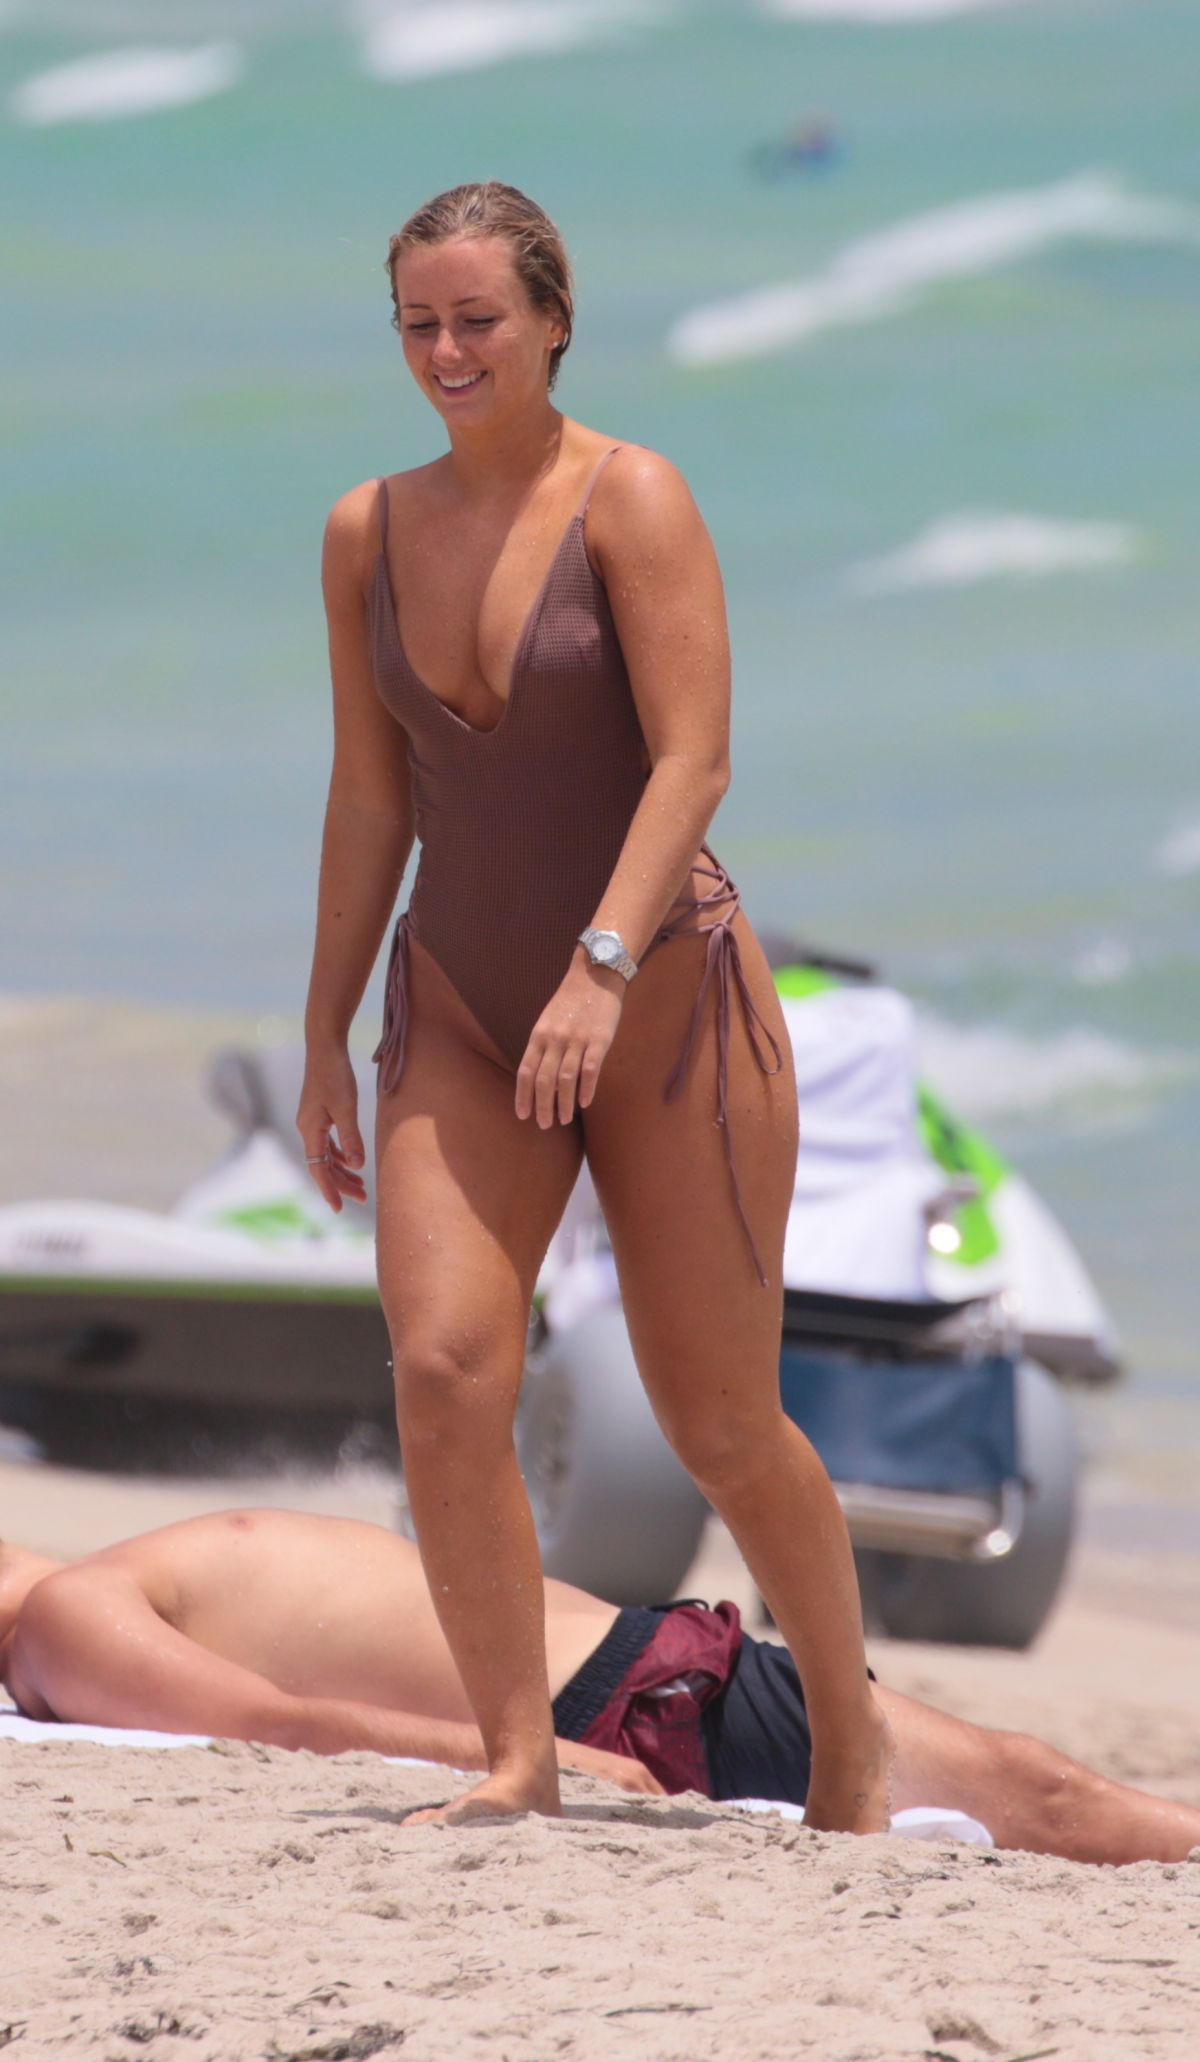 CECILA NORDAHL in Swimsuit at a Beach in Miami 08/09/2017